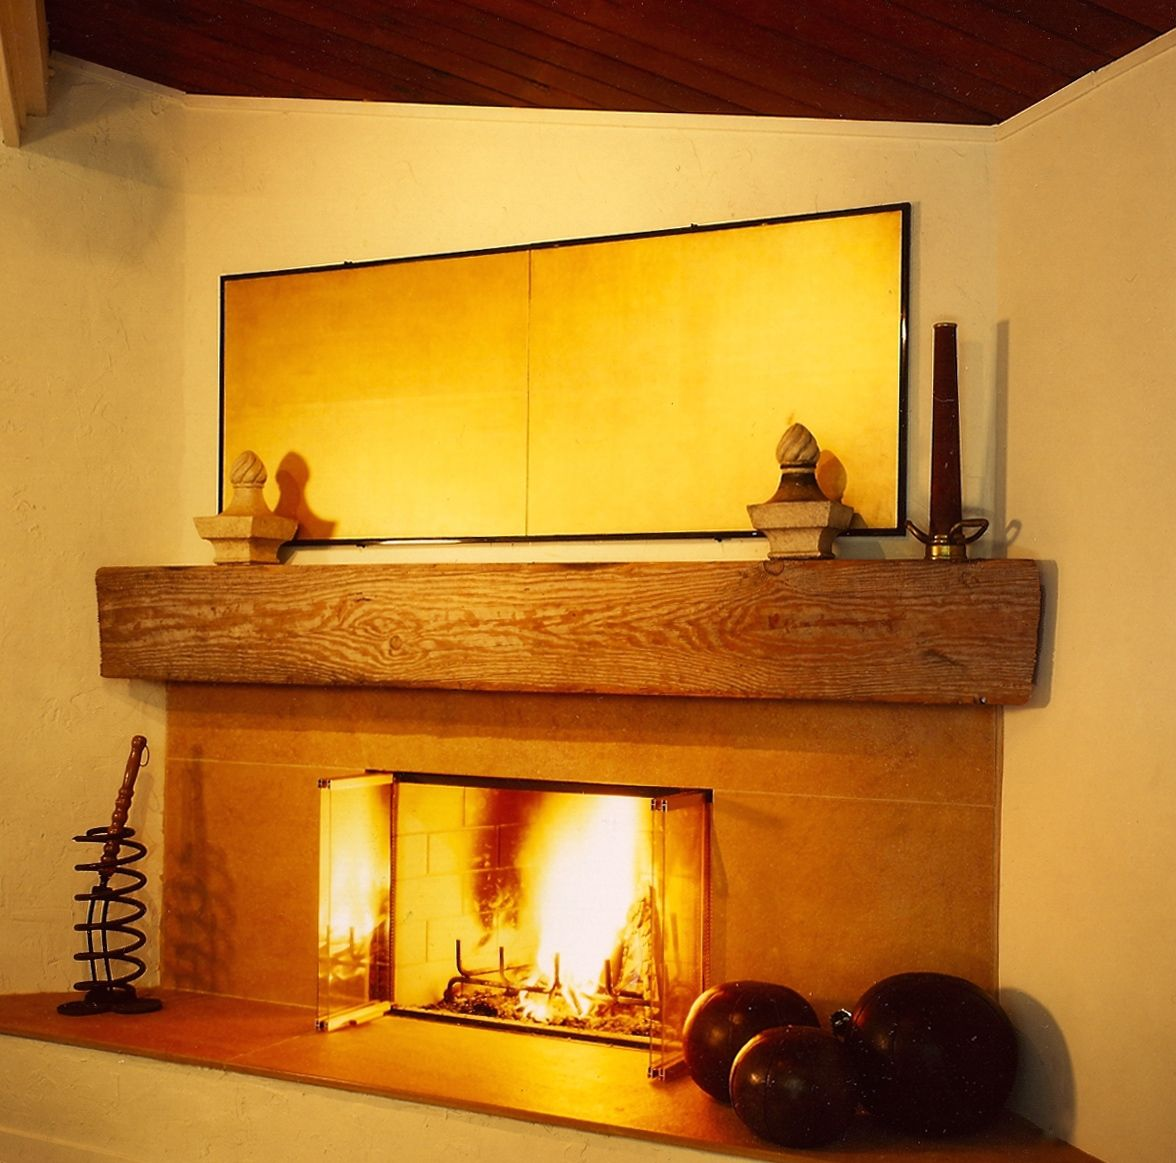 Orinda, Corner Neo angle Fireplace  2 Mantle salvaged from